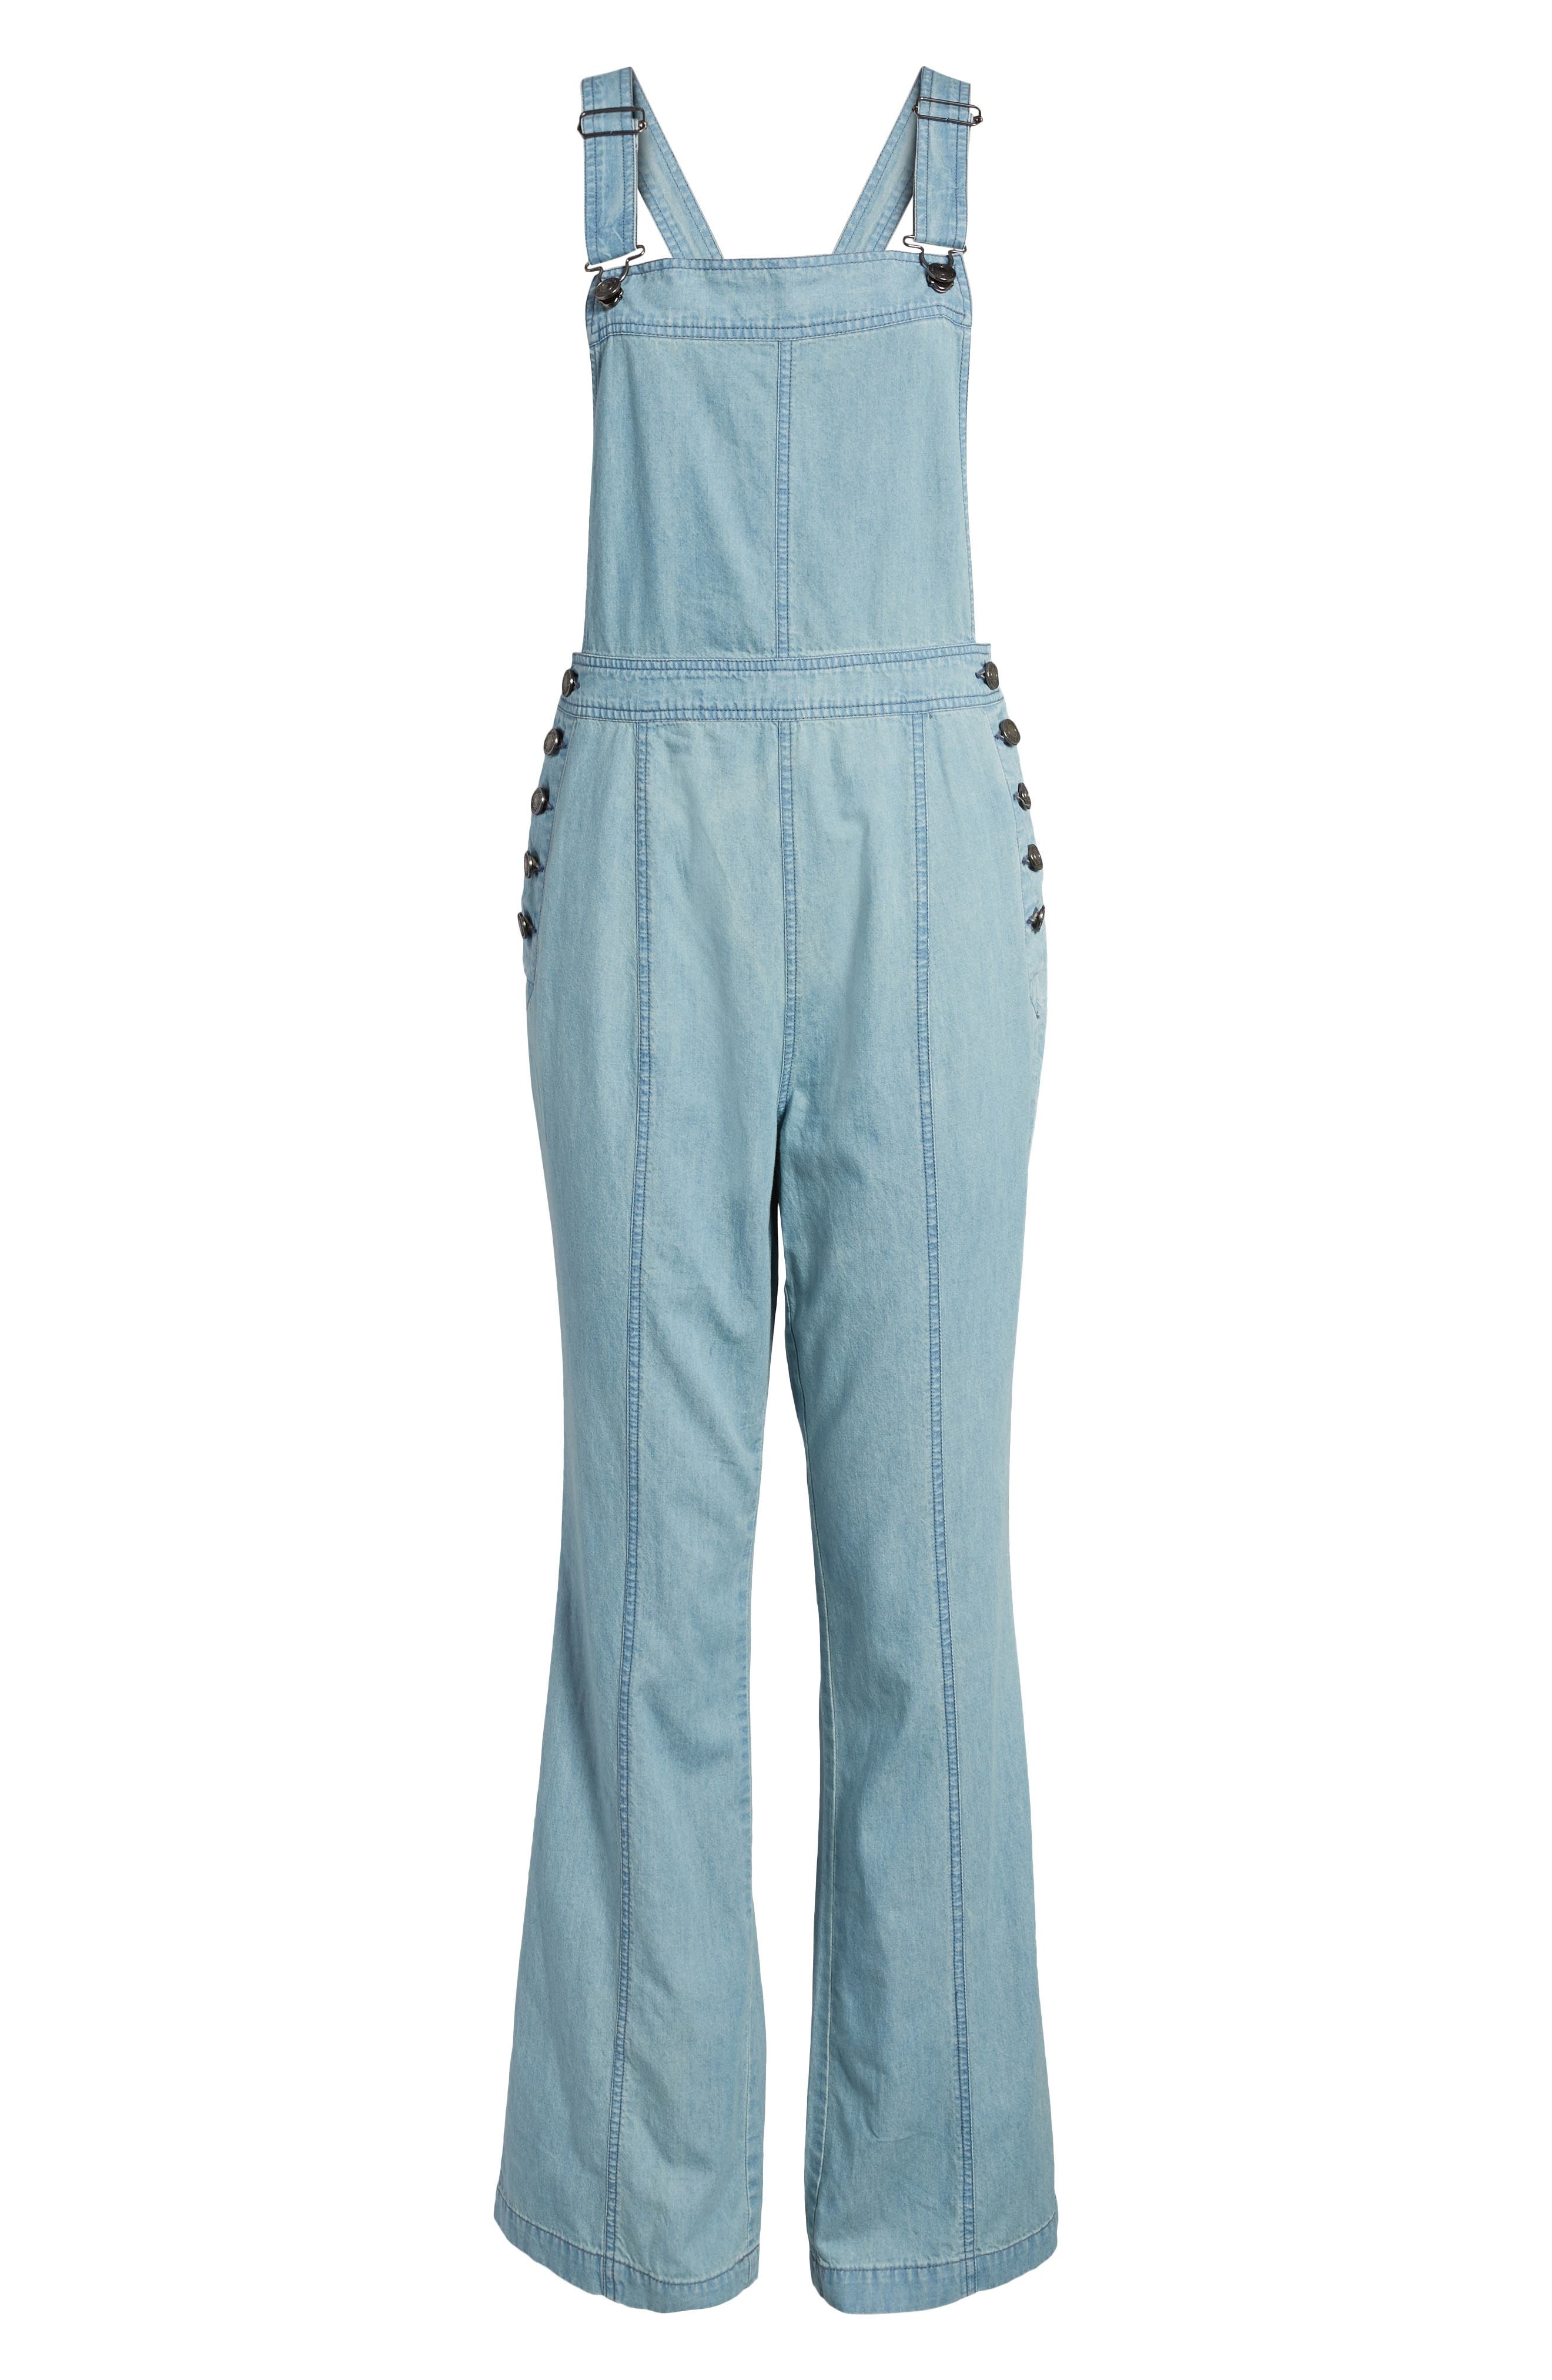 Meliani Denim Overalls,                             Alternate thumbnail 6, color,                             Denim